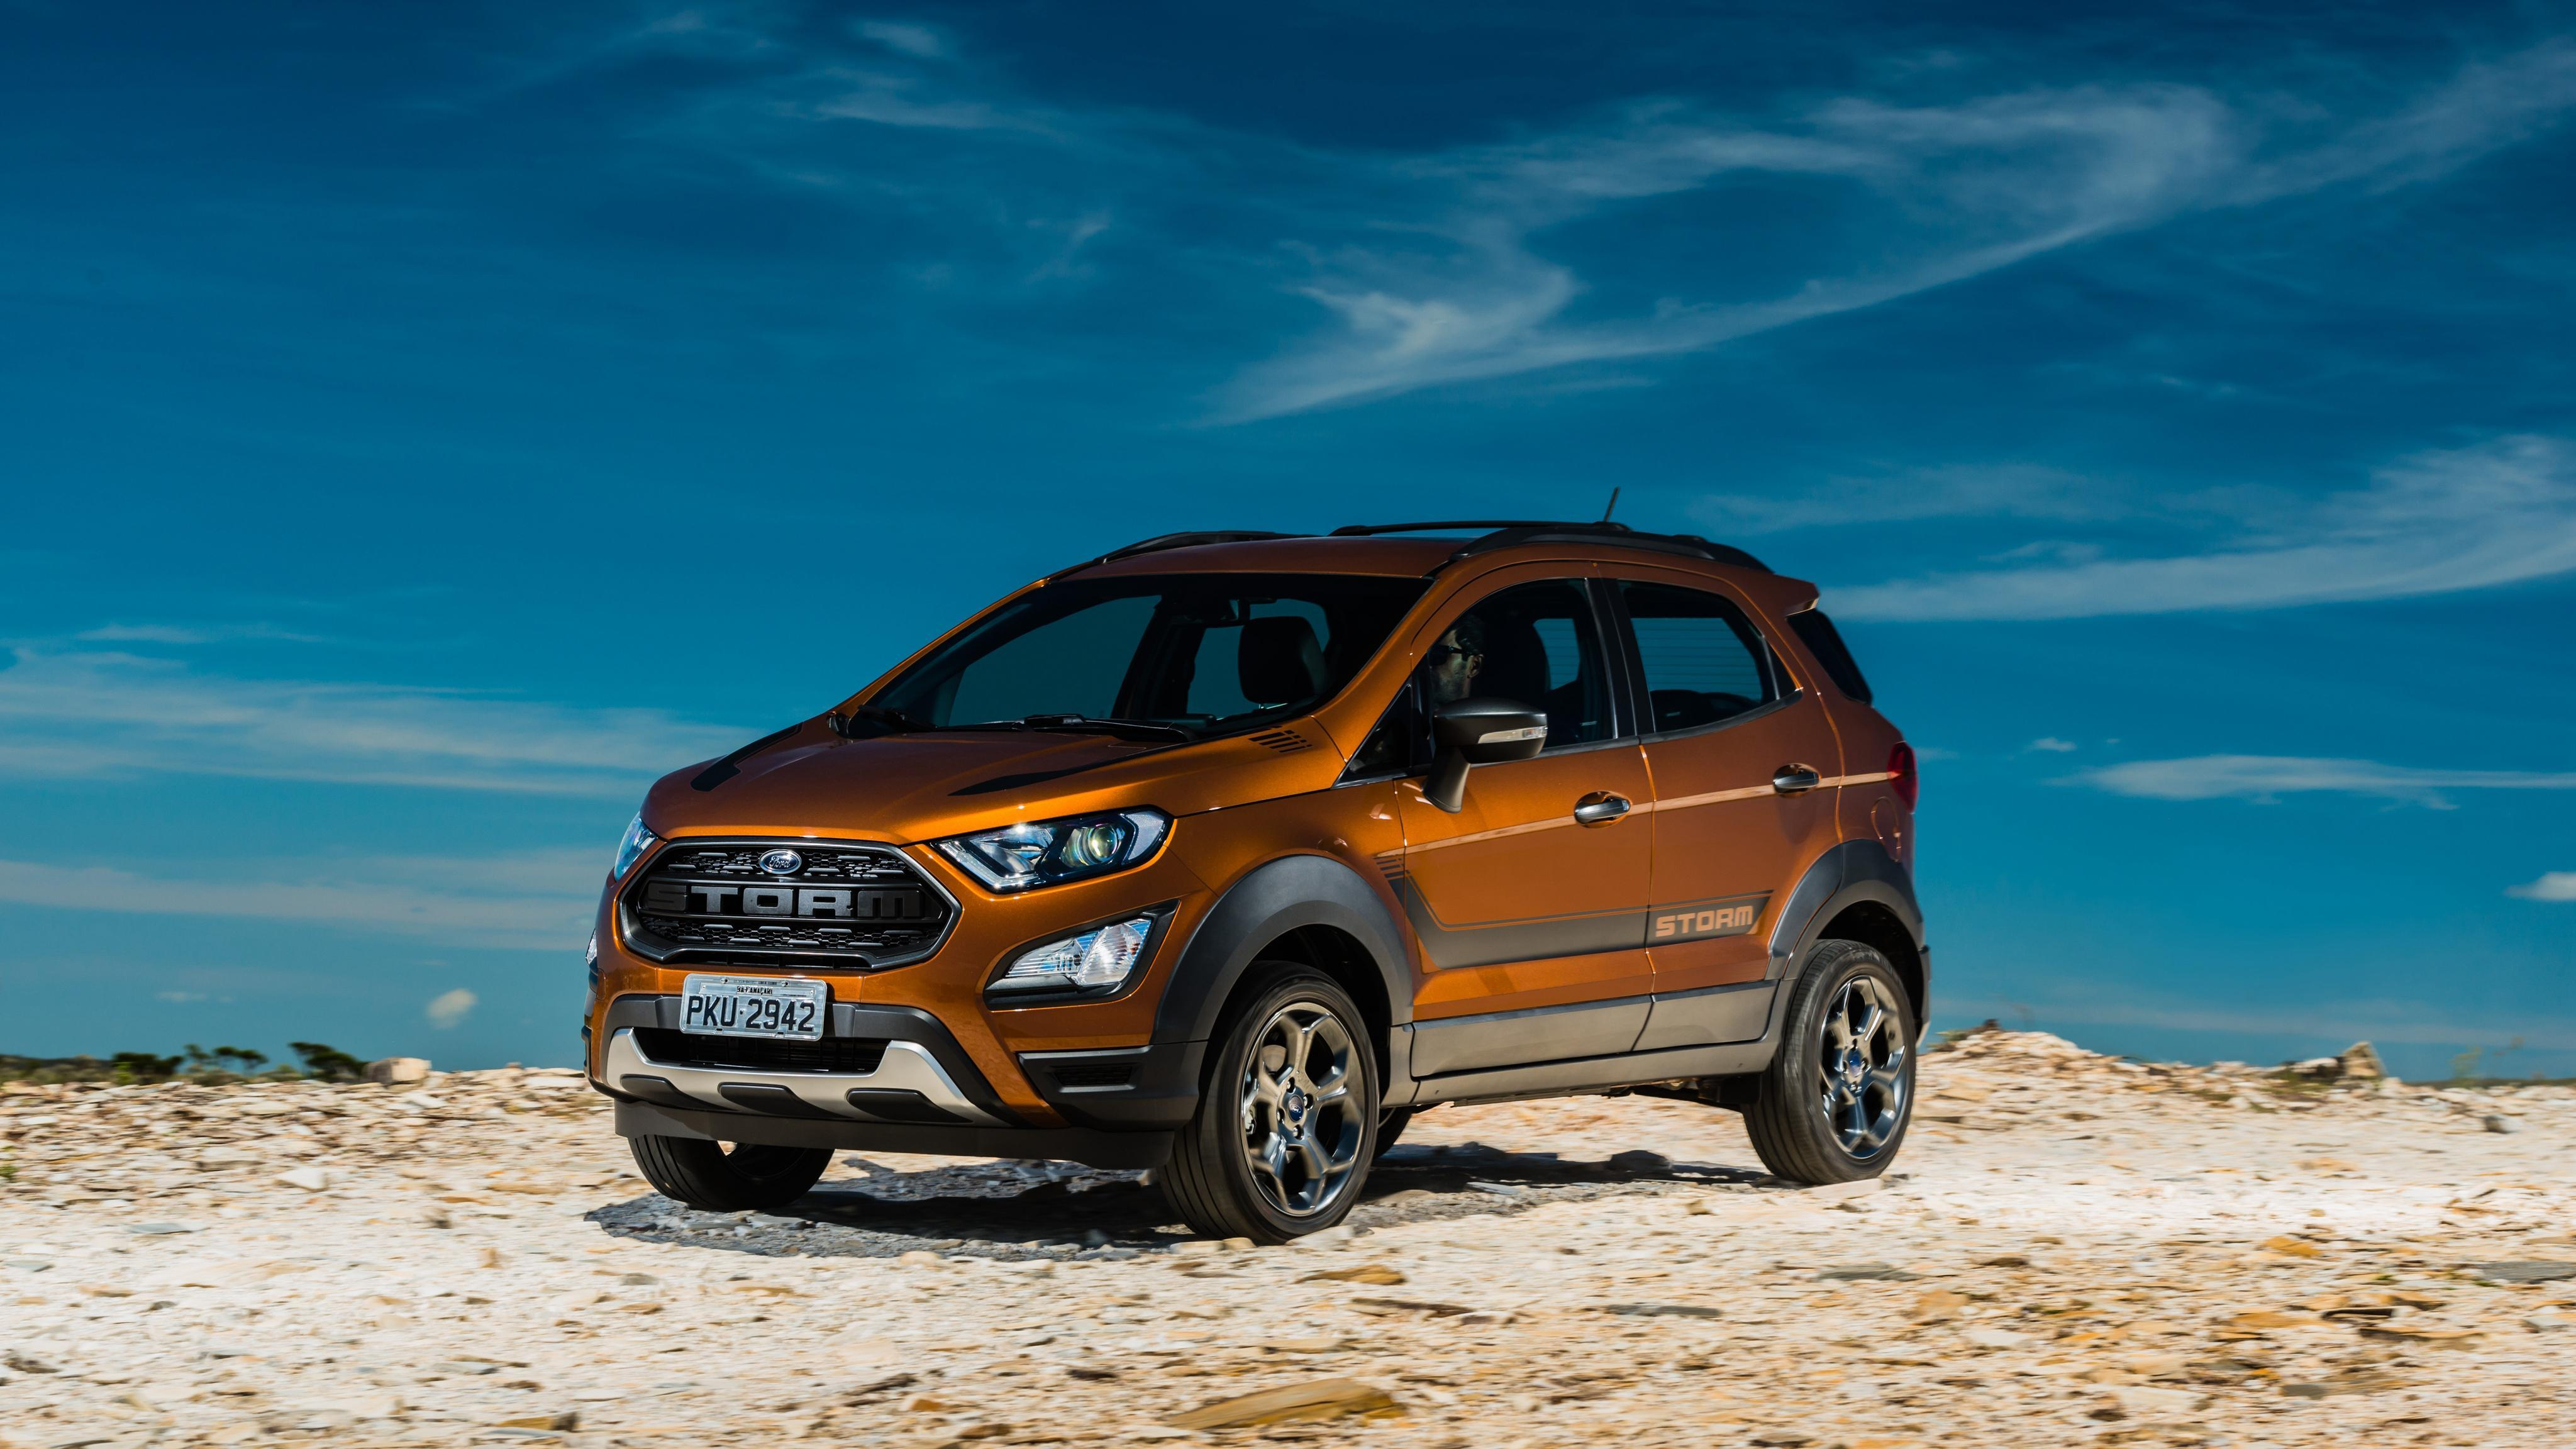 Ford Ecosport Wallpapers - Wallpaper Cave